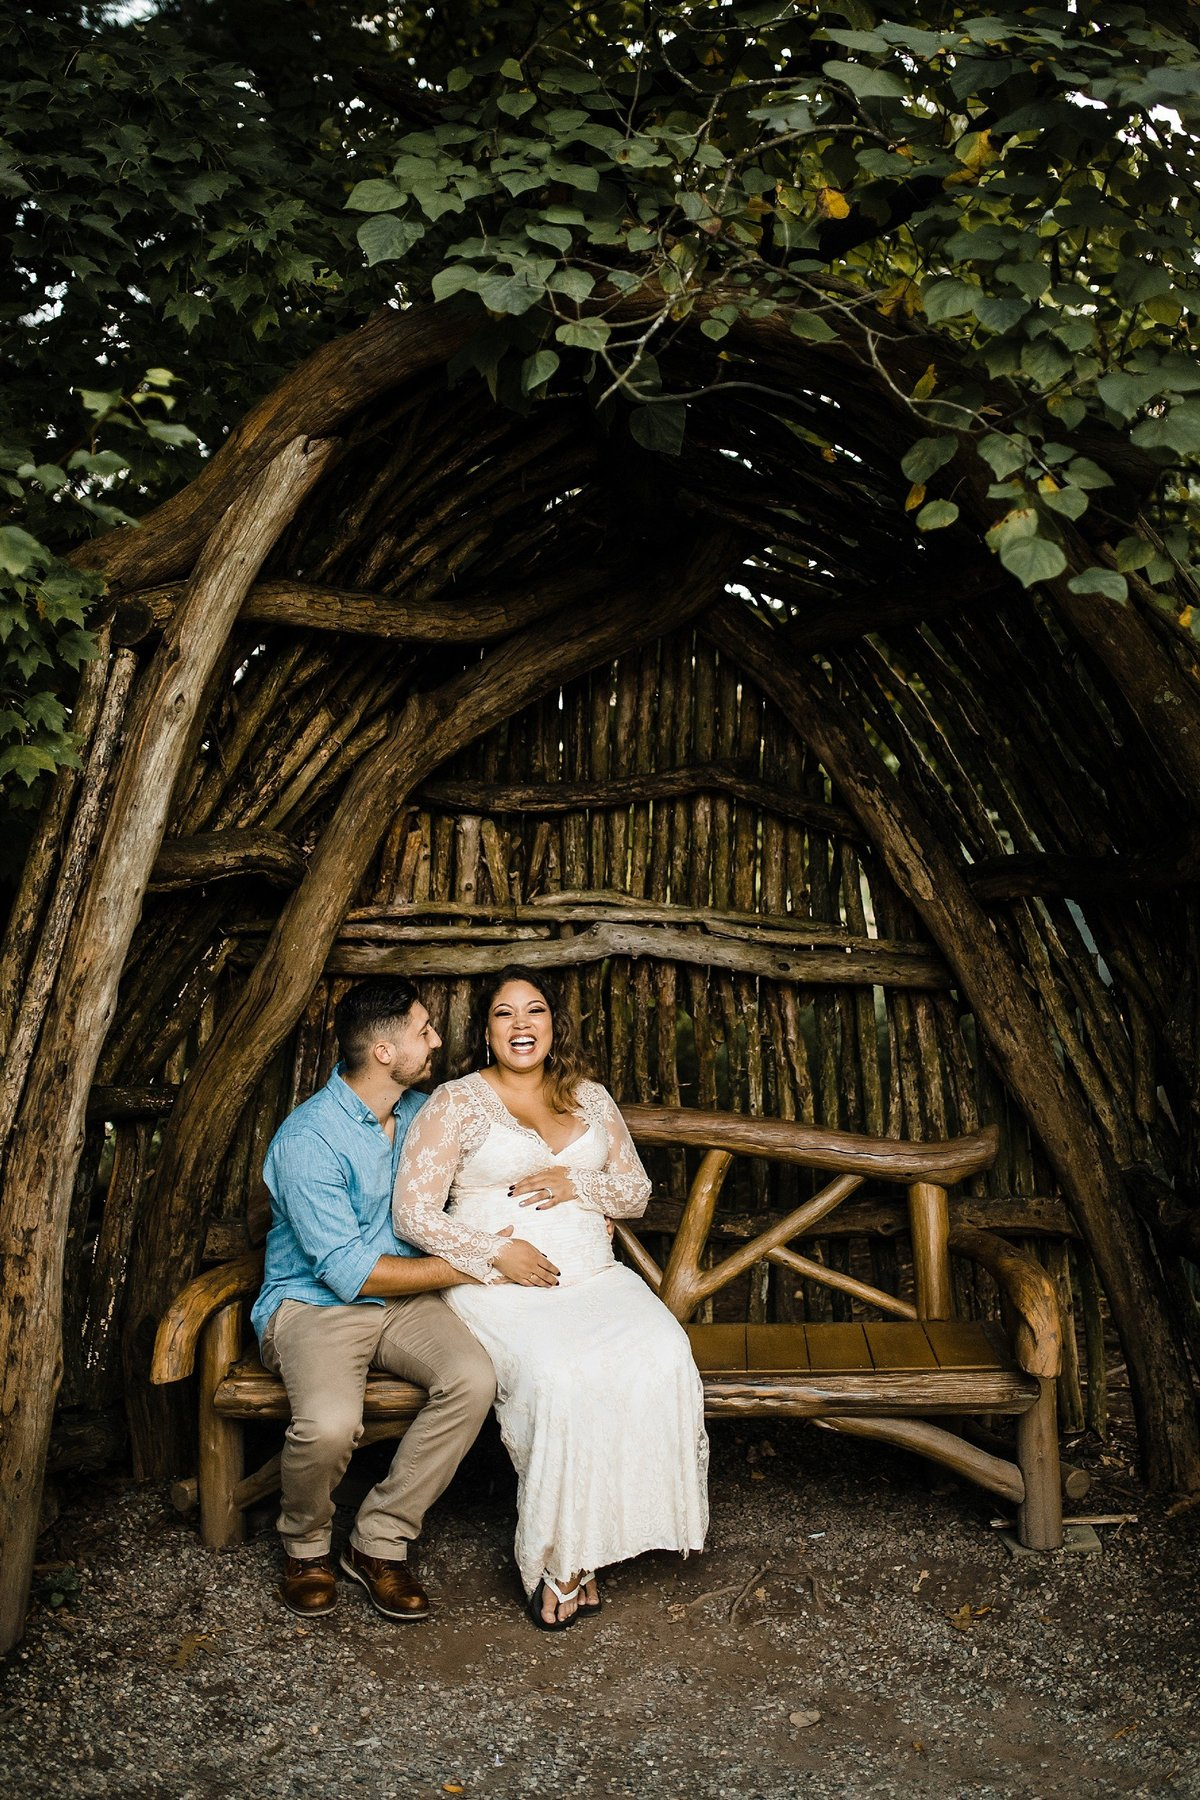 grounds-for-sculpture-maternity-session-hamilton-new-jersey-rebecca-renner-photography_0007